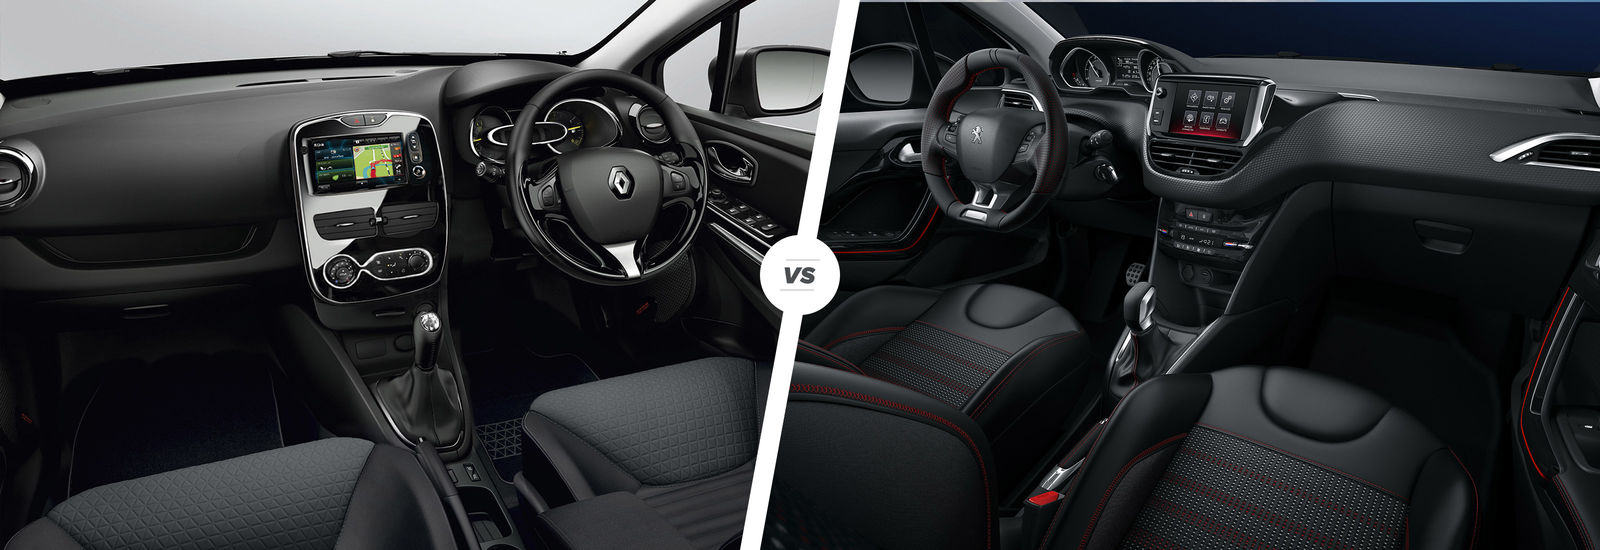 renault clio vs peugeot 208 french face off carwow. Black Bedroom Furniture Sets. Home Design Ideas